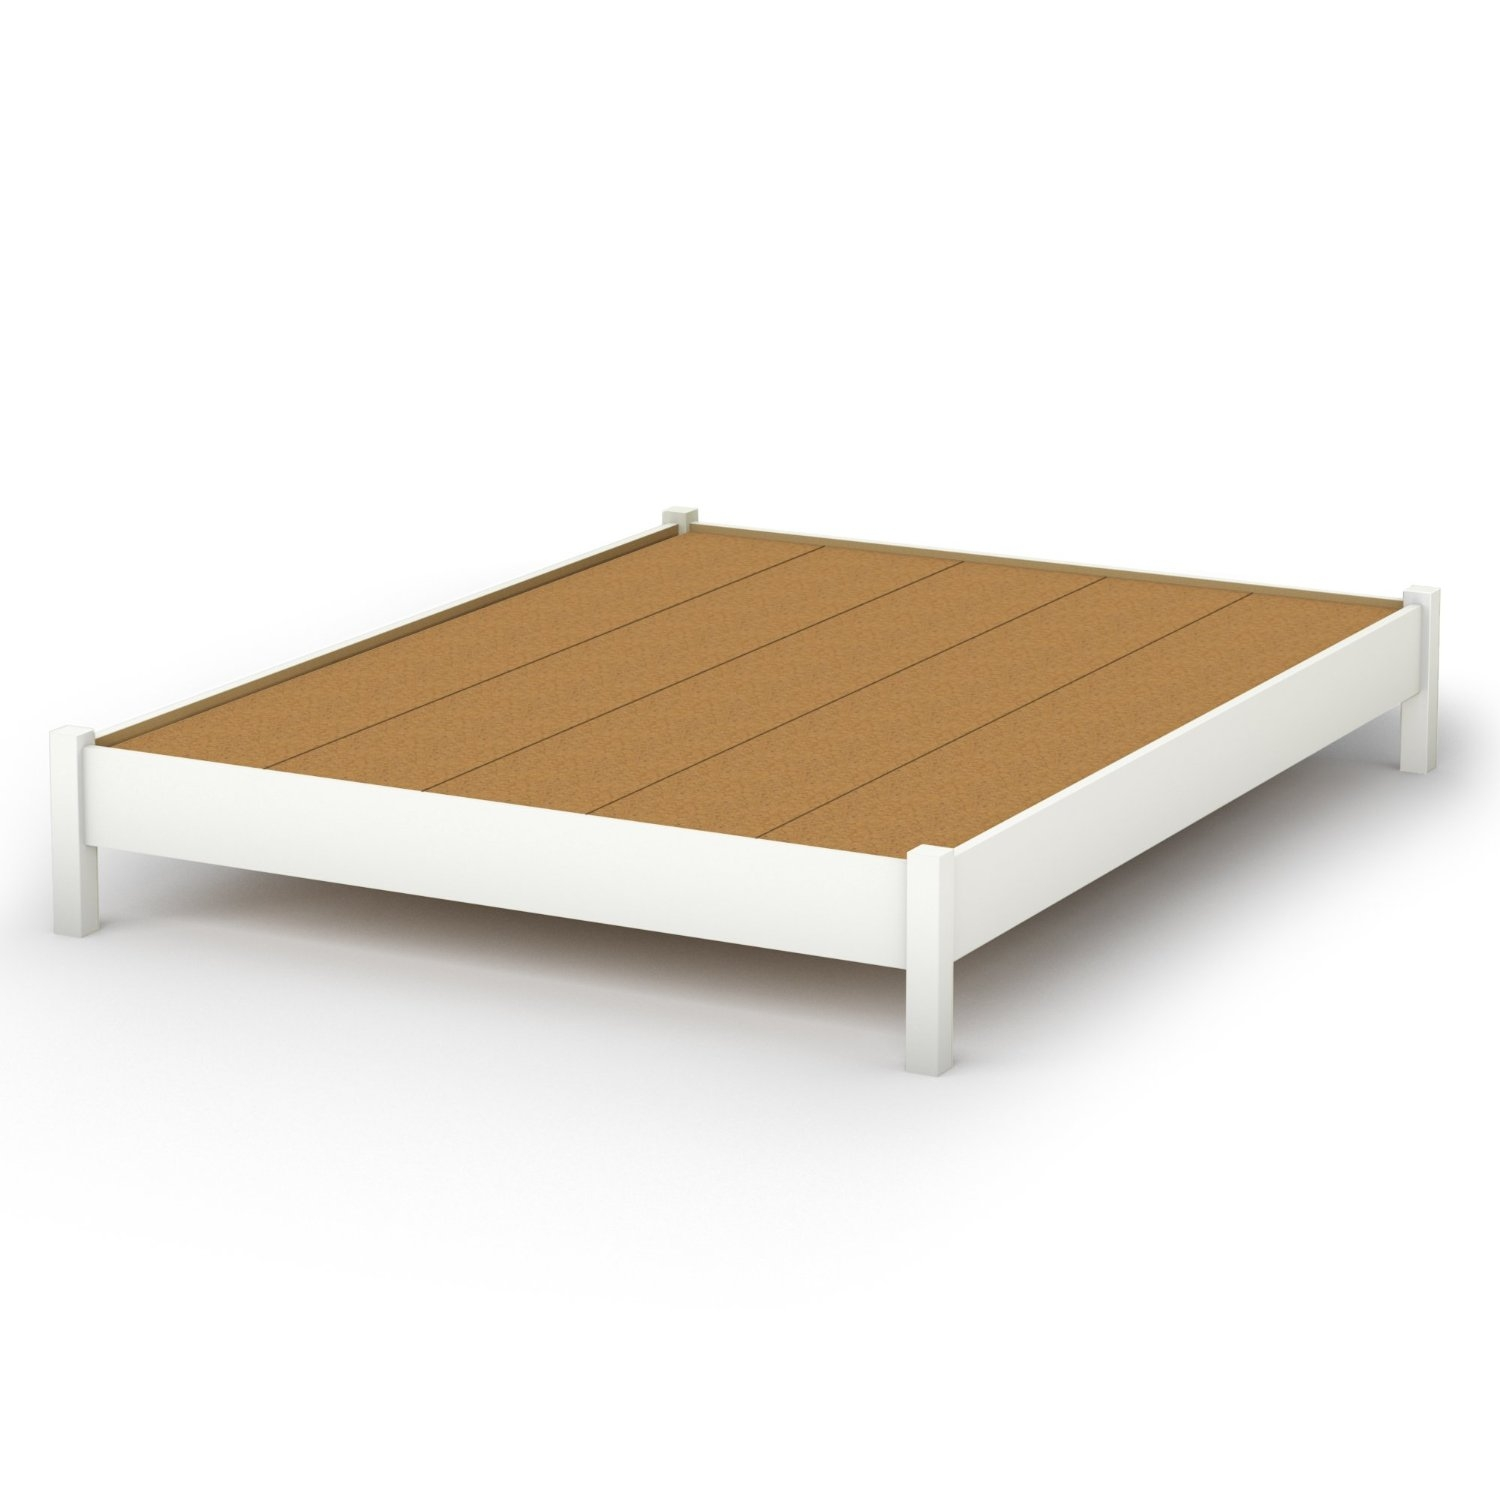 Queen Platform Bed Frame No Headboard